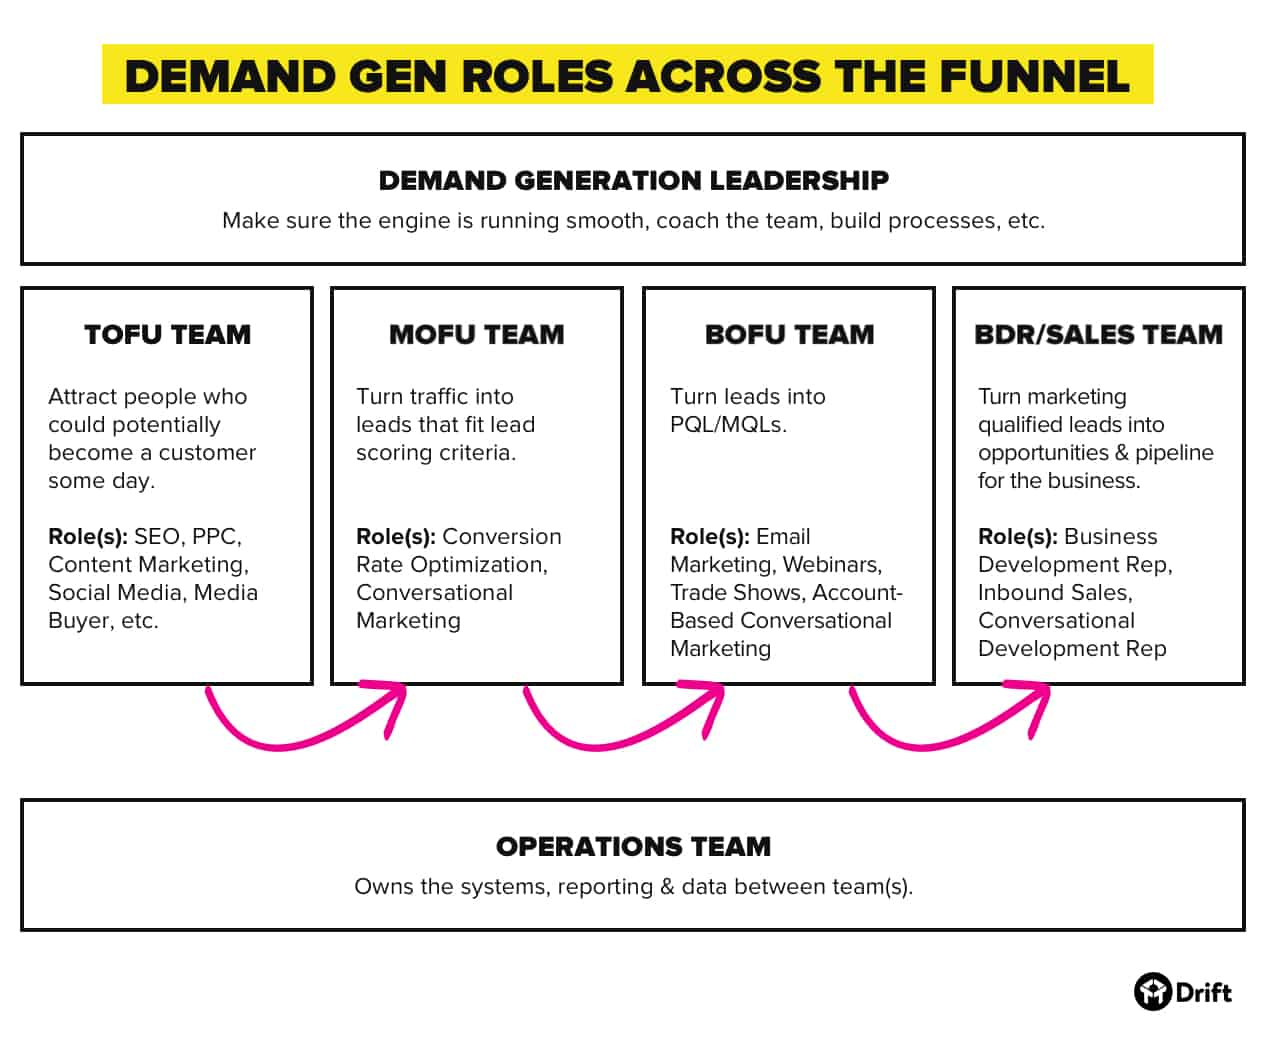 demand generation team and roles